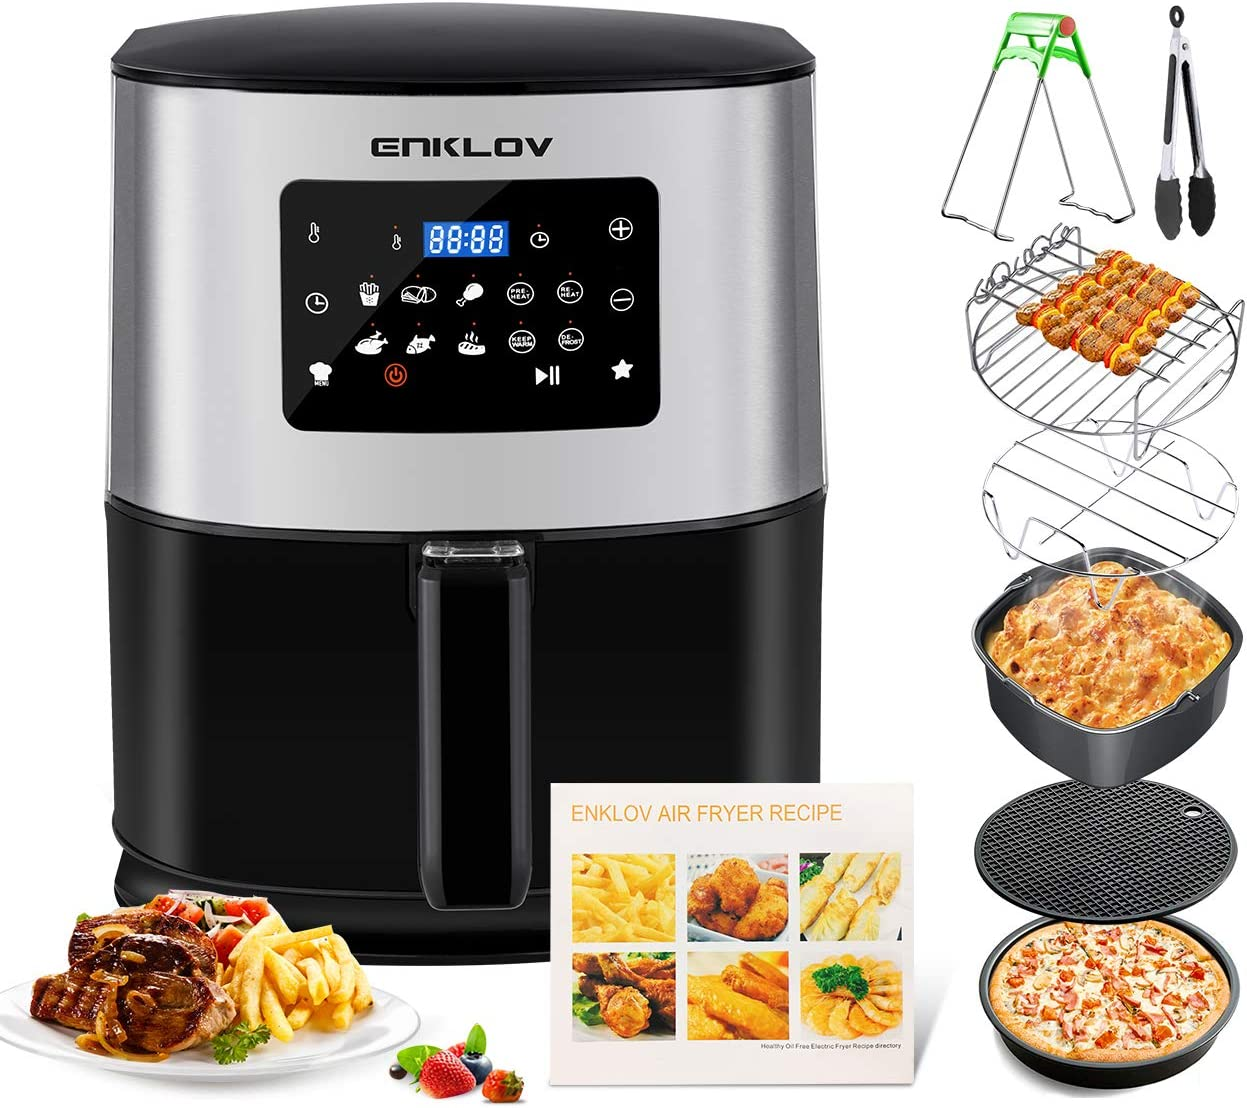 ENKLOV AFE08 AFE0 Air Fryer 7.5Qt XL (7 Cooking Accessories & Recipe Book Provided) 10 in 1 Digital Display Control, Oil Less Hot Airfryer Oven, Time-Saving Electric Power Cooker, Black